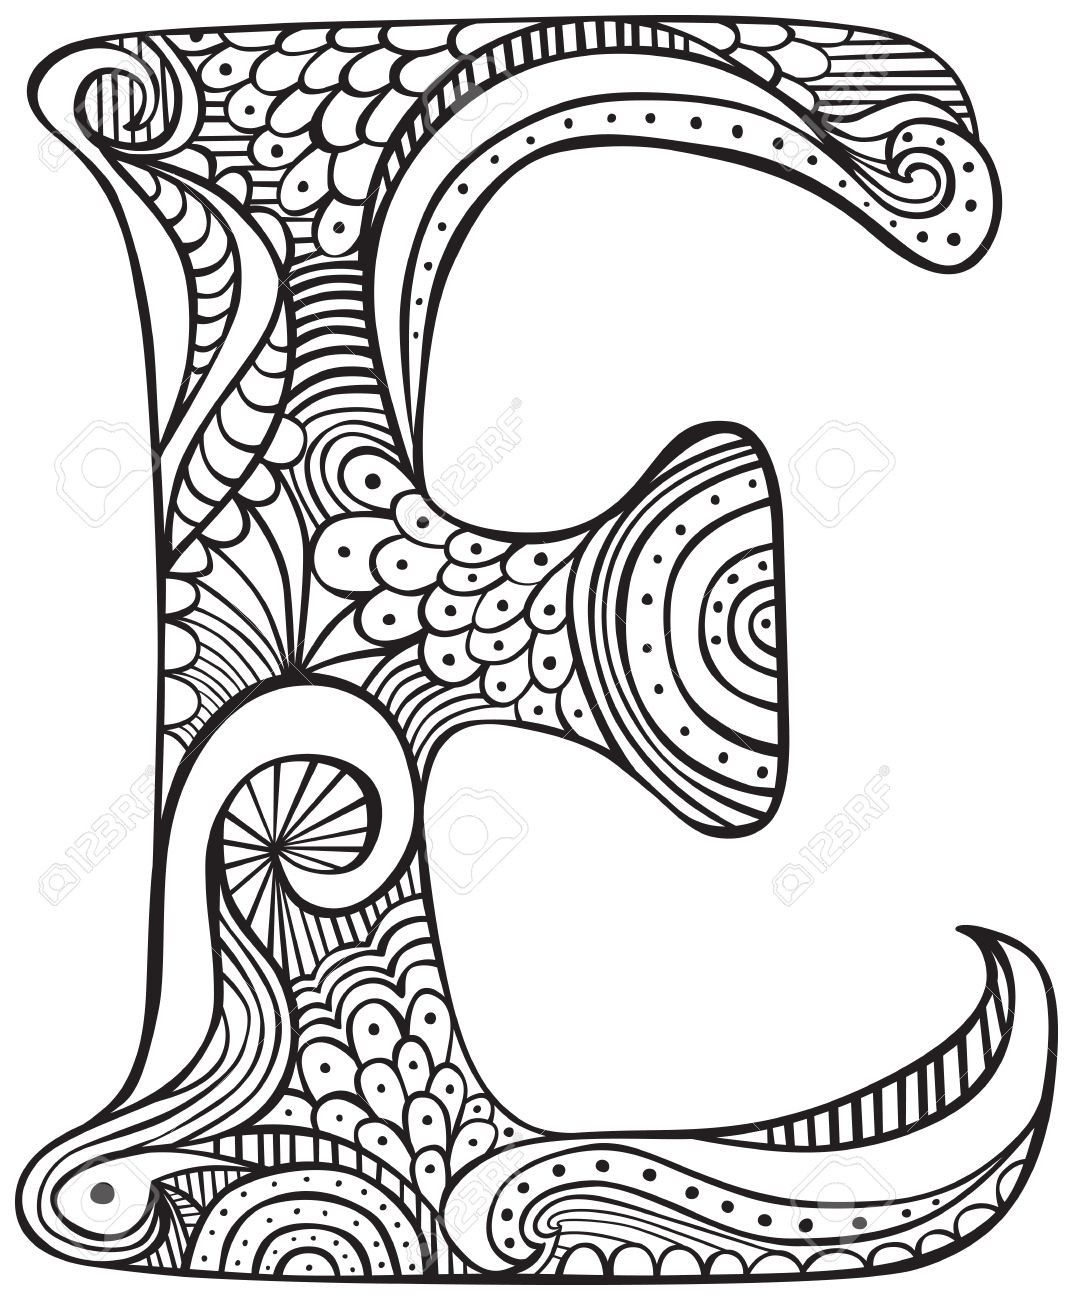 Pin By Jennifer Jacaruso On D I Y Do It Yourself Colouring Sheets For Adults Coloring Letters Free Disney Coloring Pages